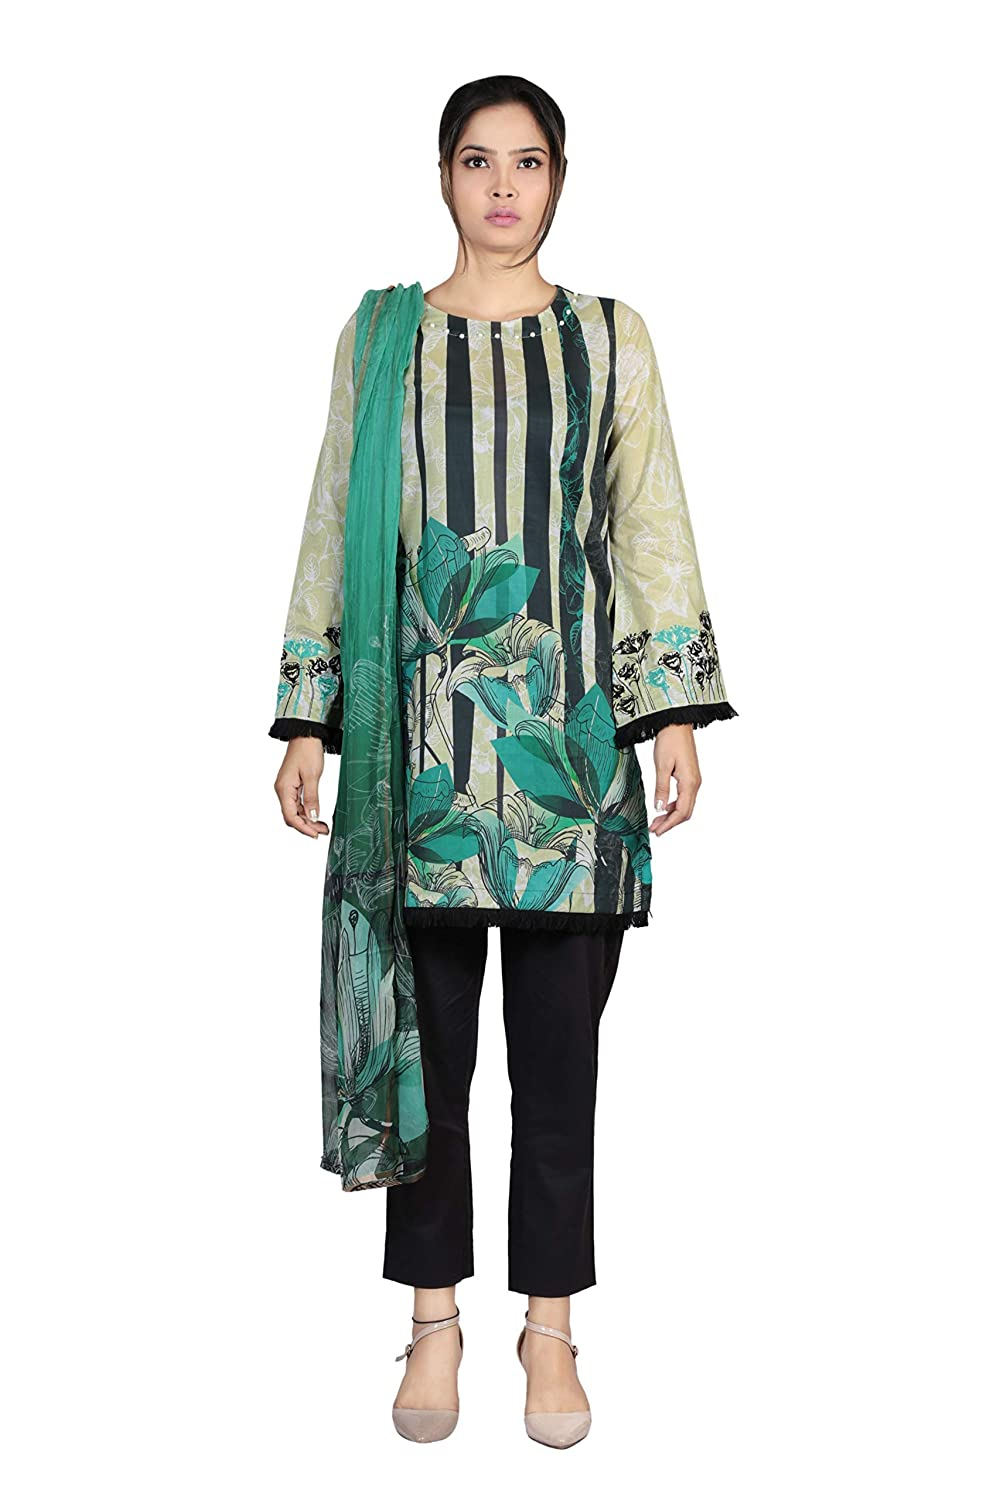 Alpine Green YELLOW Women Salwar Suit Set Salwar Kameez Readymade Kurti for Women Tunic Top Kurta Set